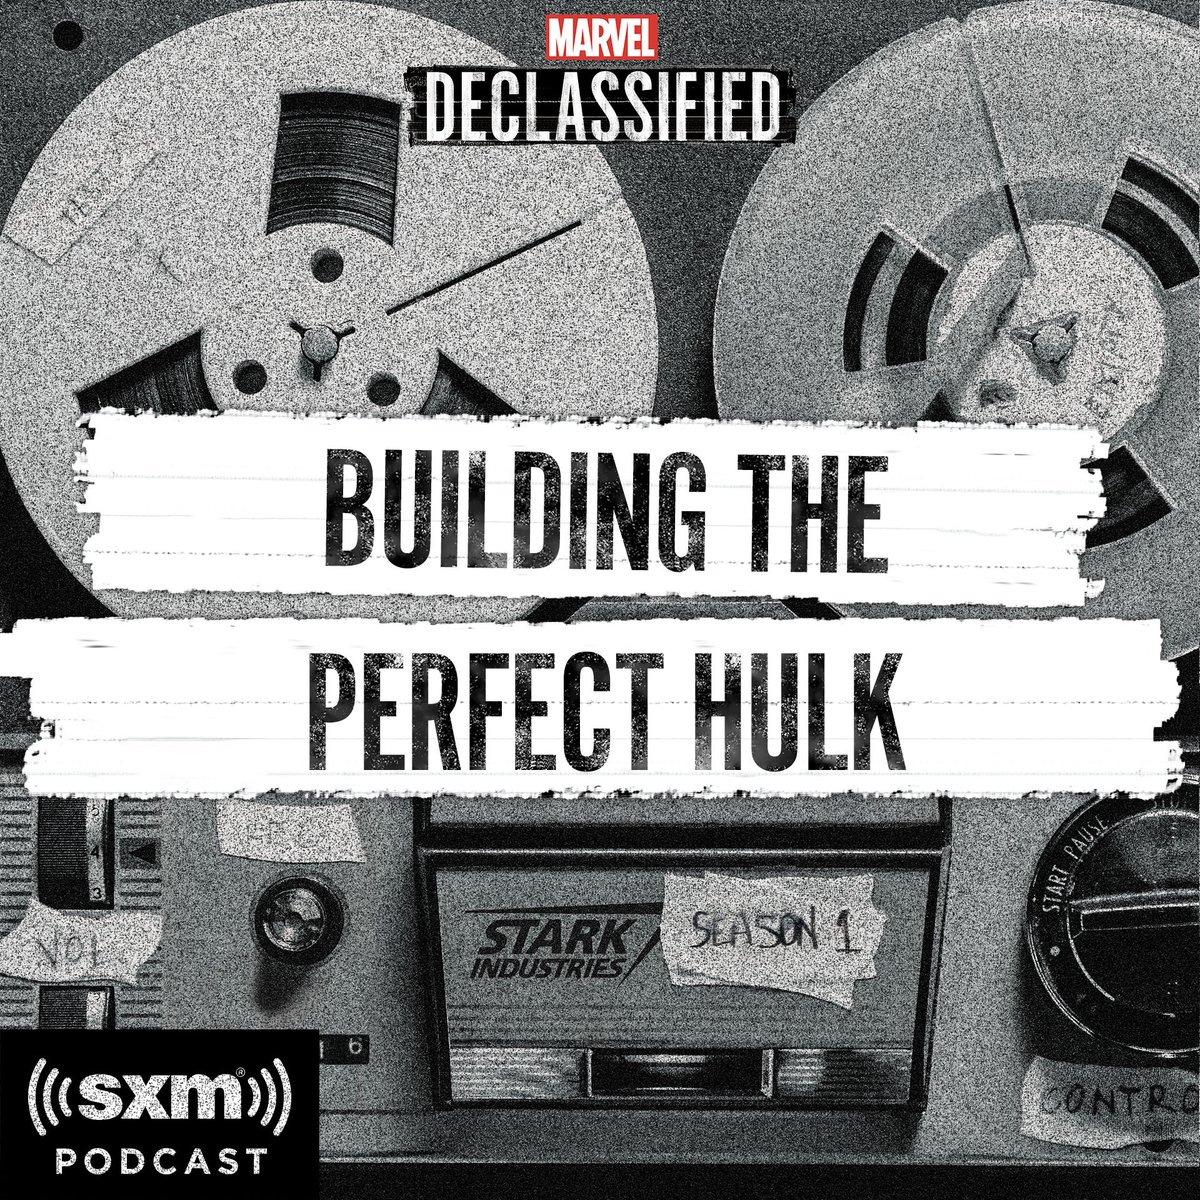 In this week's episode of #MarvelsDeclassified, @lorrainecink and I soak up incredible amounts of gamma radiation and dive deep into the evolution and psychology of the Hulk.